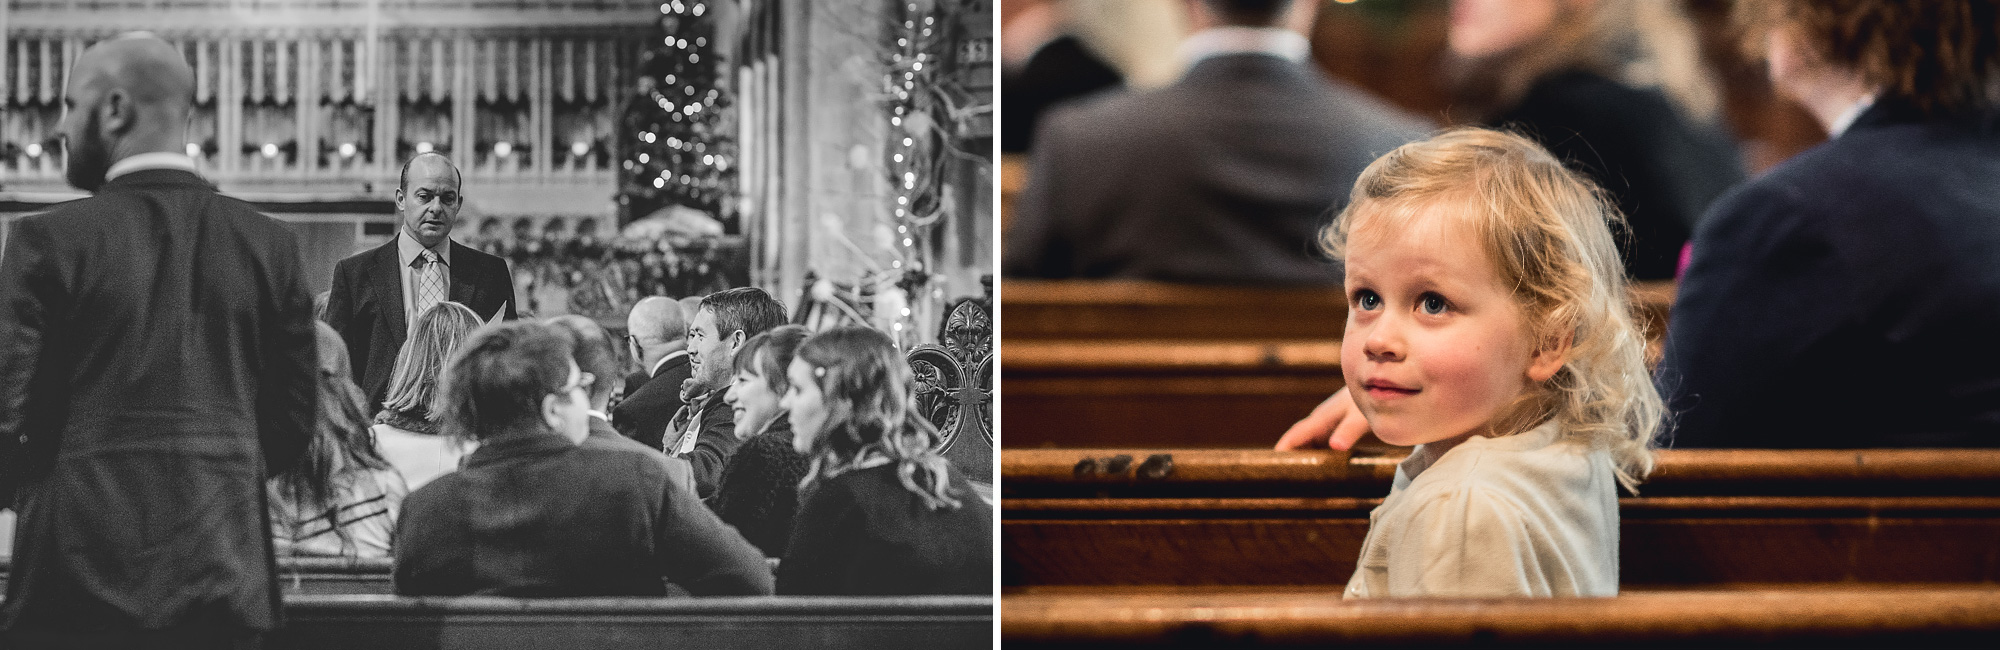 wedding-photographer-milton-abbey-people.jpg